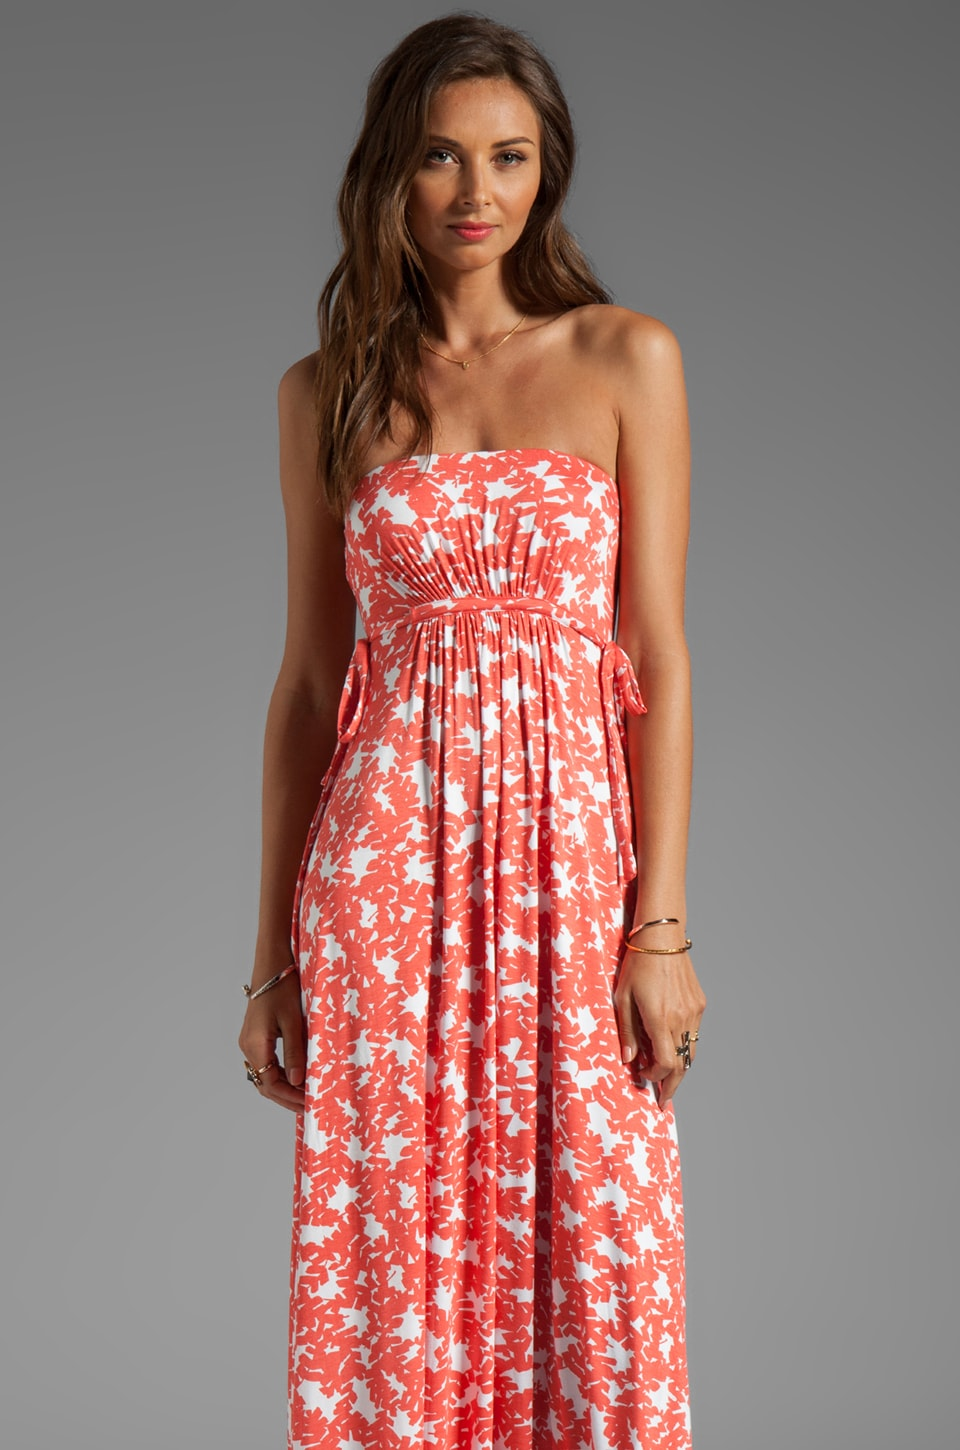 Rachel Pally Dragonfly Maxi Dress in Apricot Bonsai